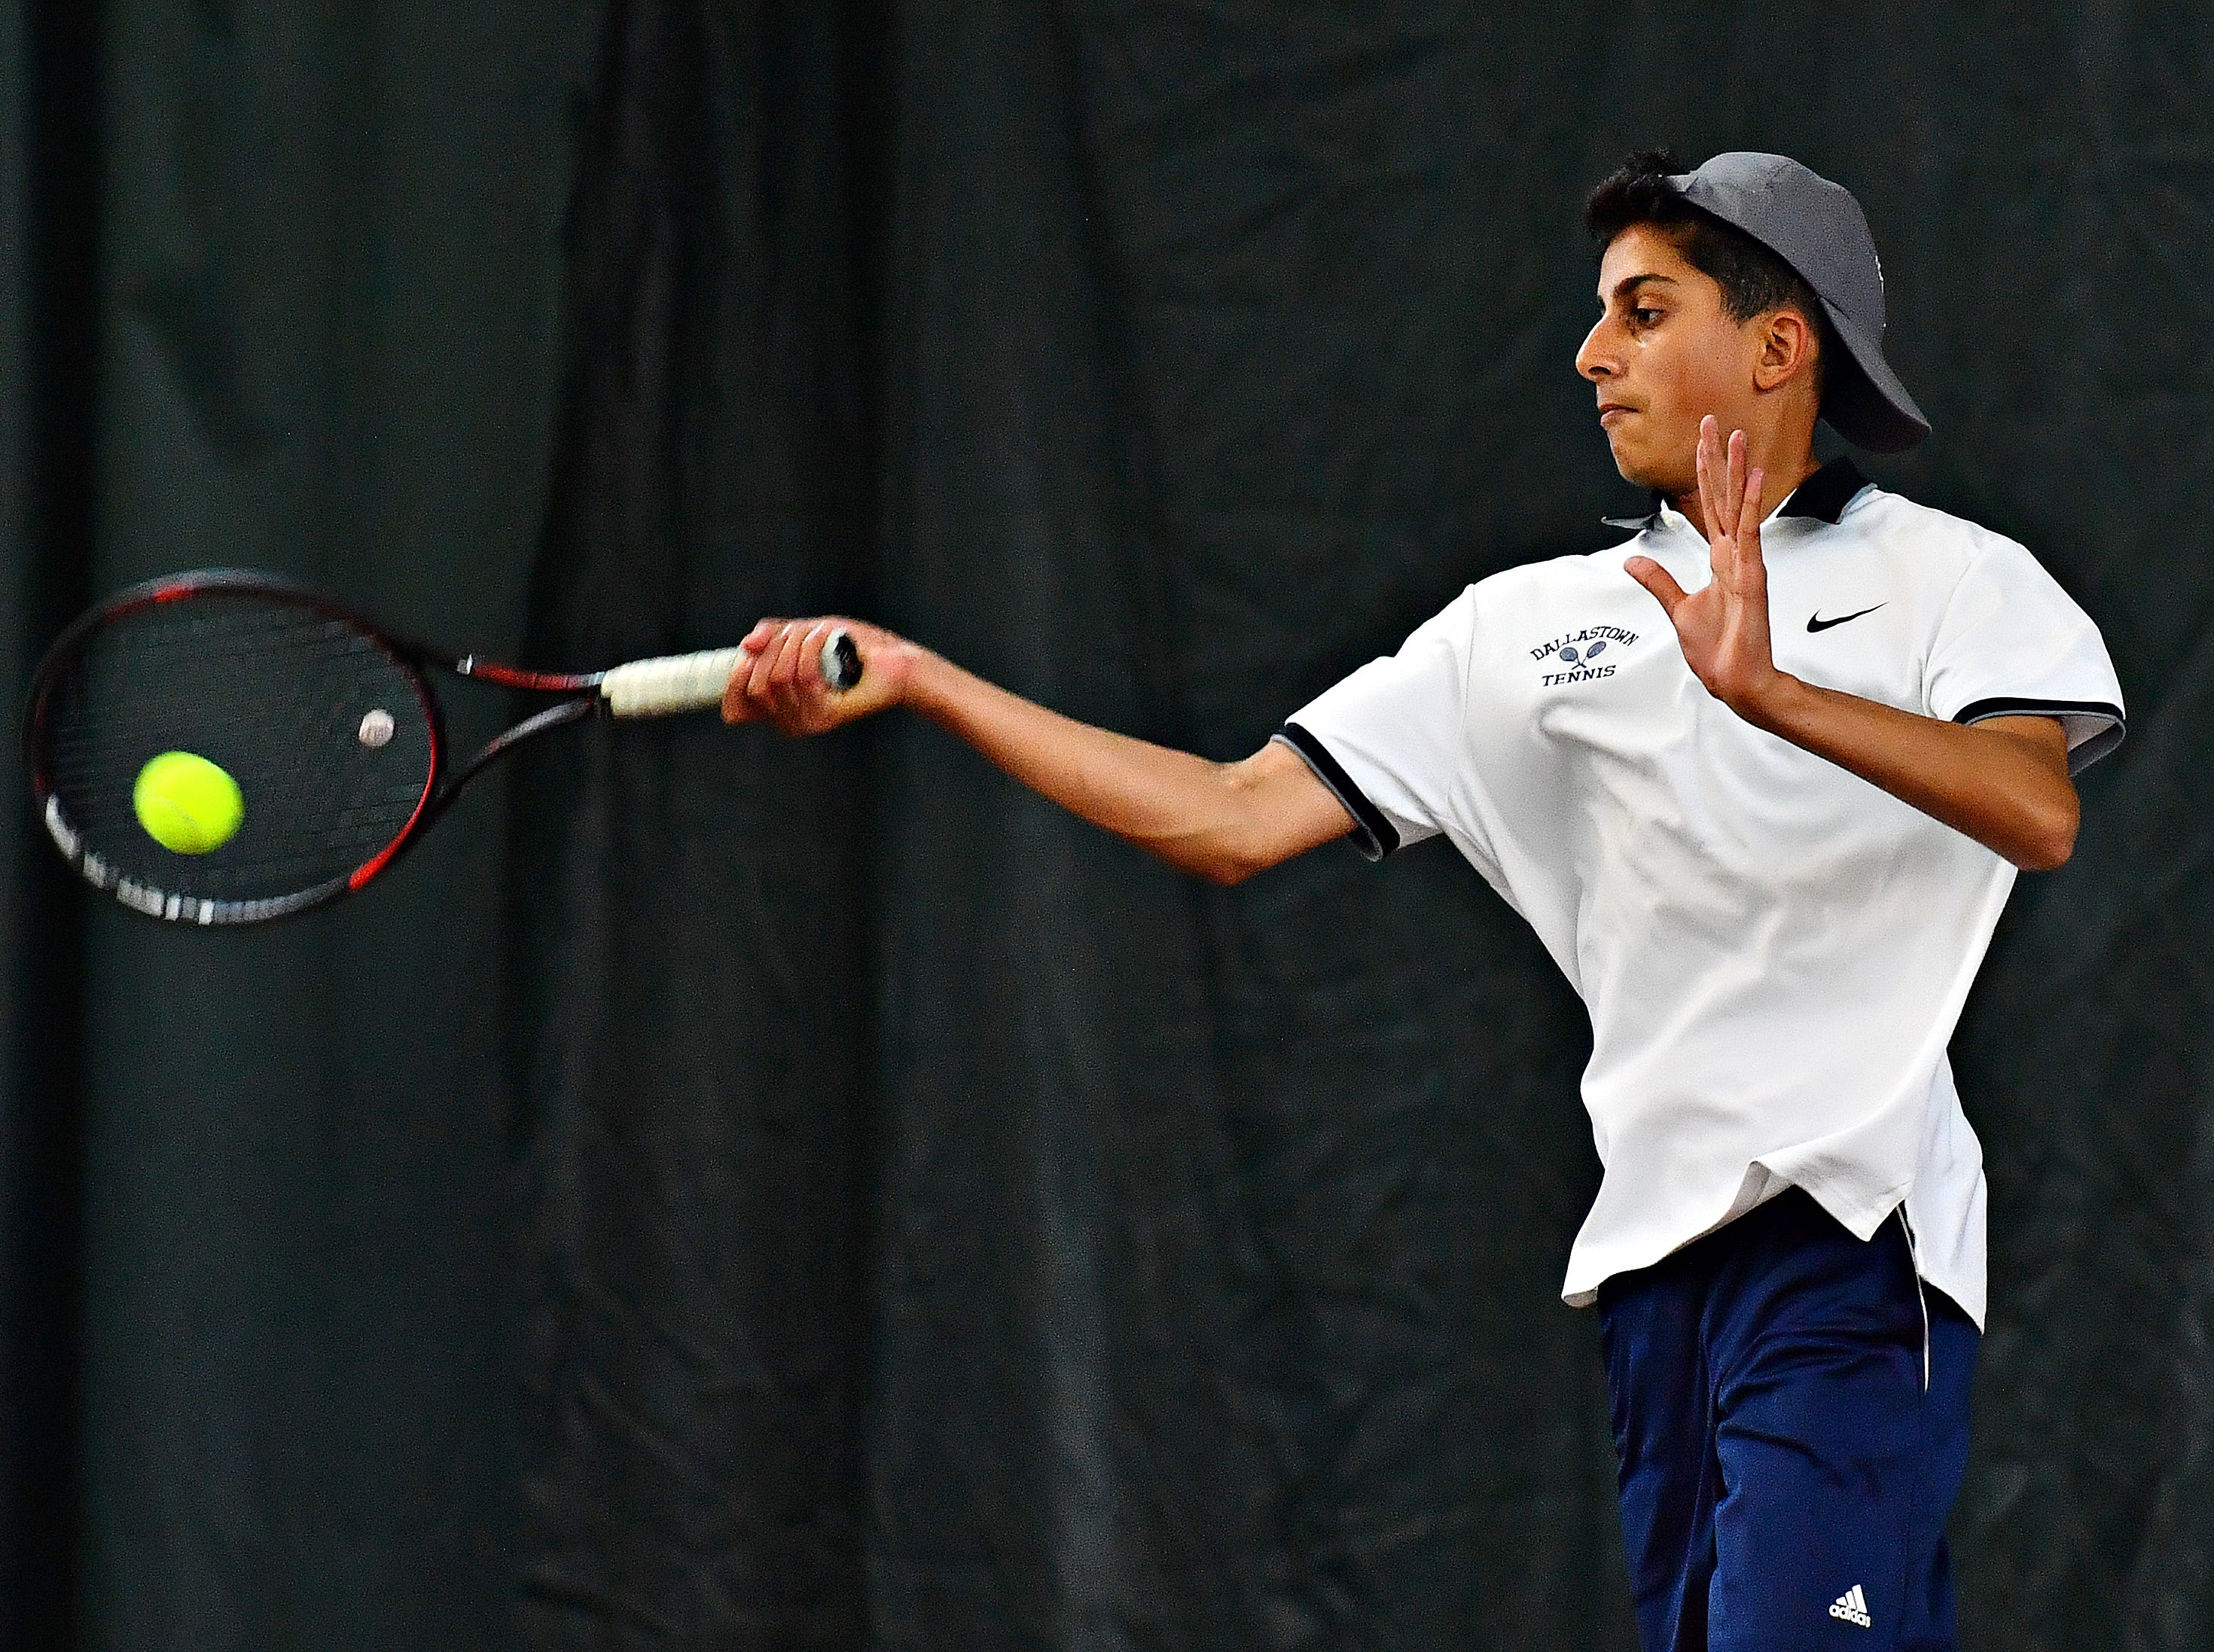 Dallastown's Aryan Saharan returns the ball to Hershey during District III, Class 3-A boys' tennis team championship doubles action at Hershey Raquet Club in Hershey, Thursday, May 9, 2019. Hershey would win the match as well as the title. Dawn J. Sagert photo